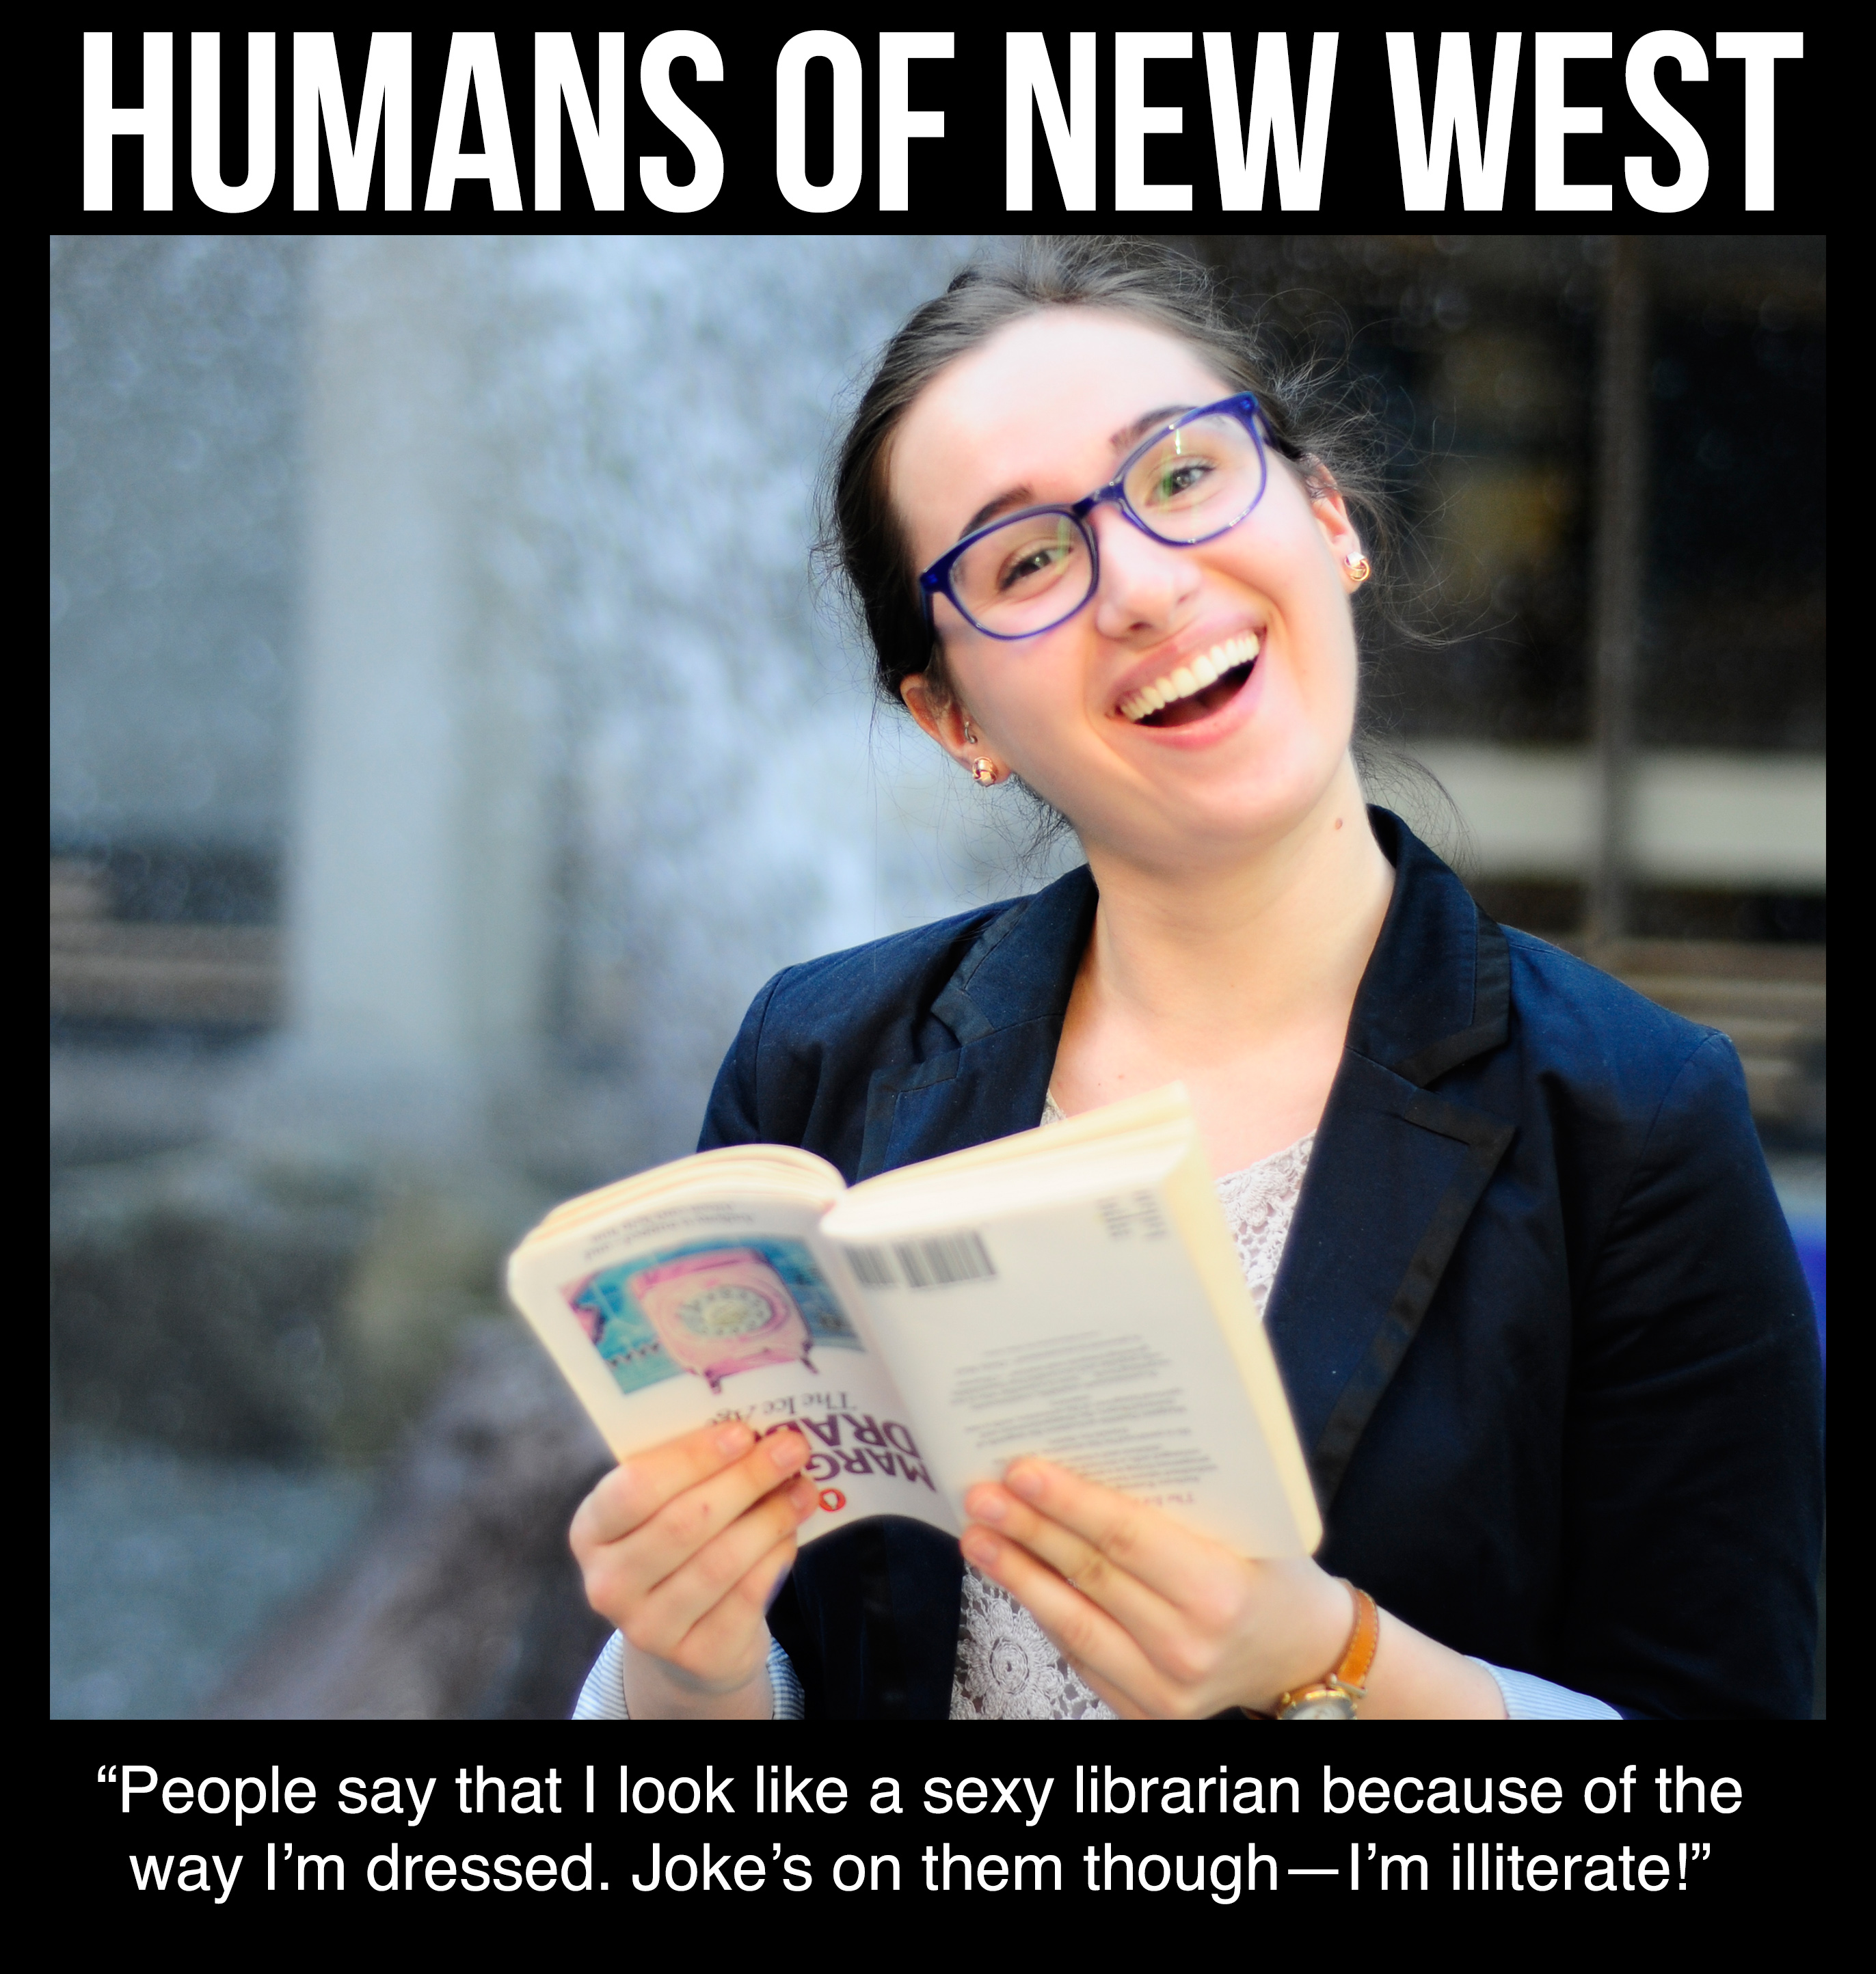 Humans of new west 1